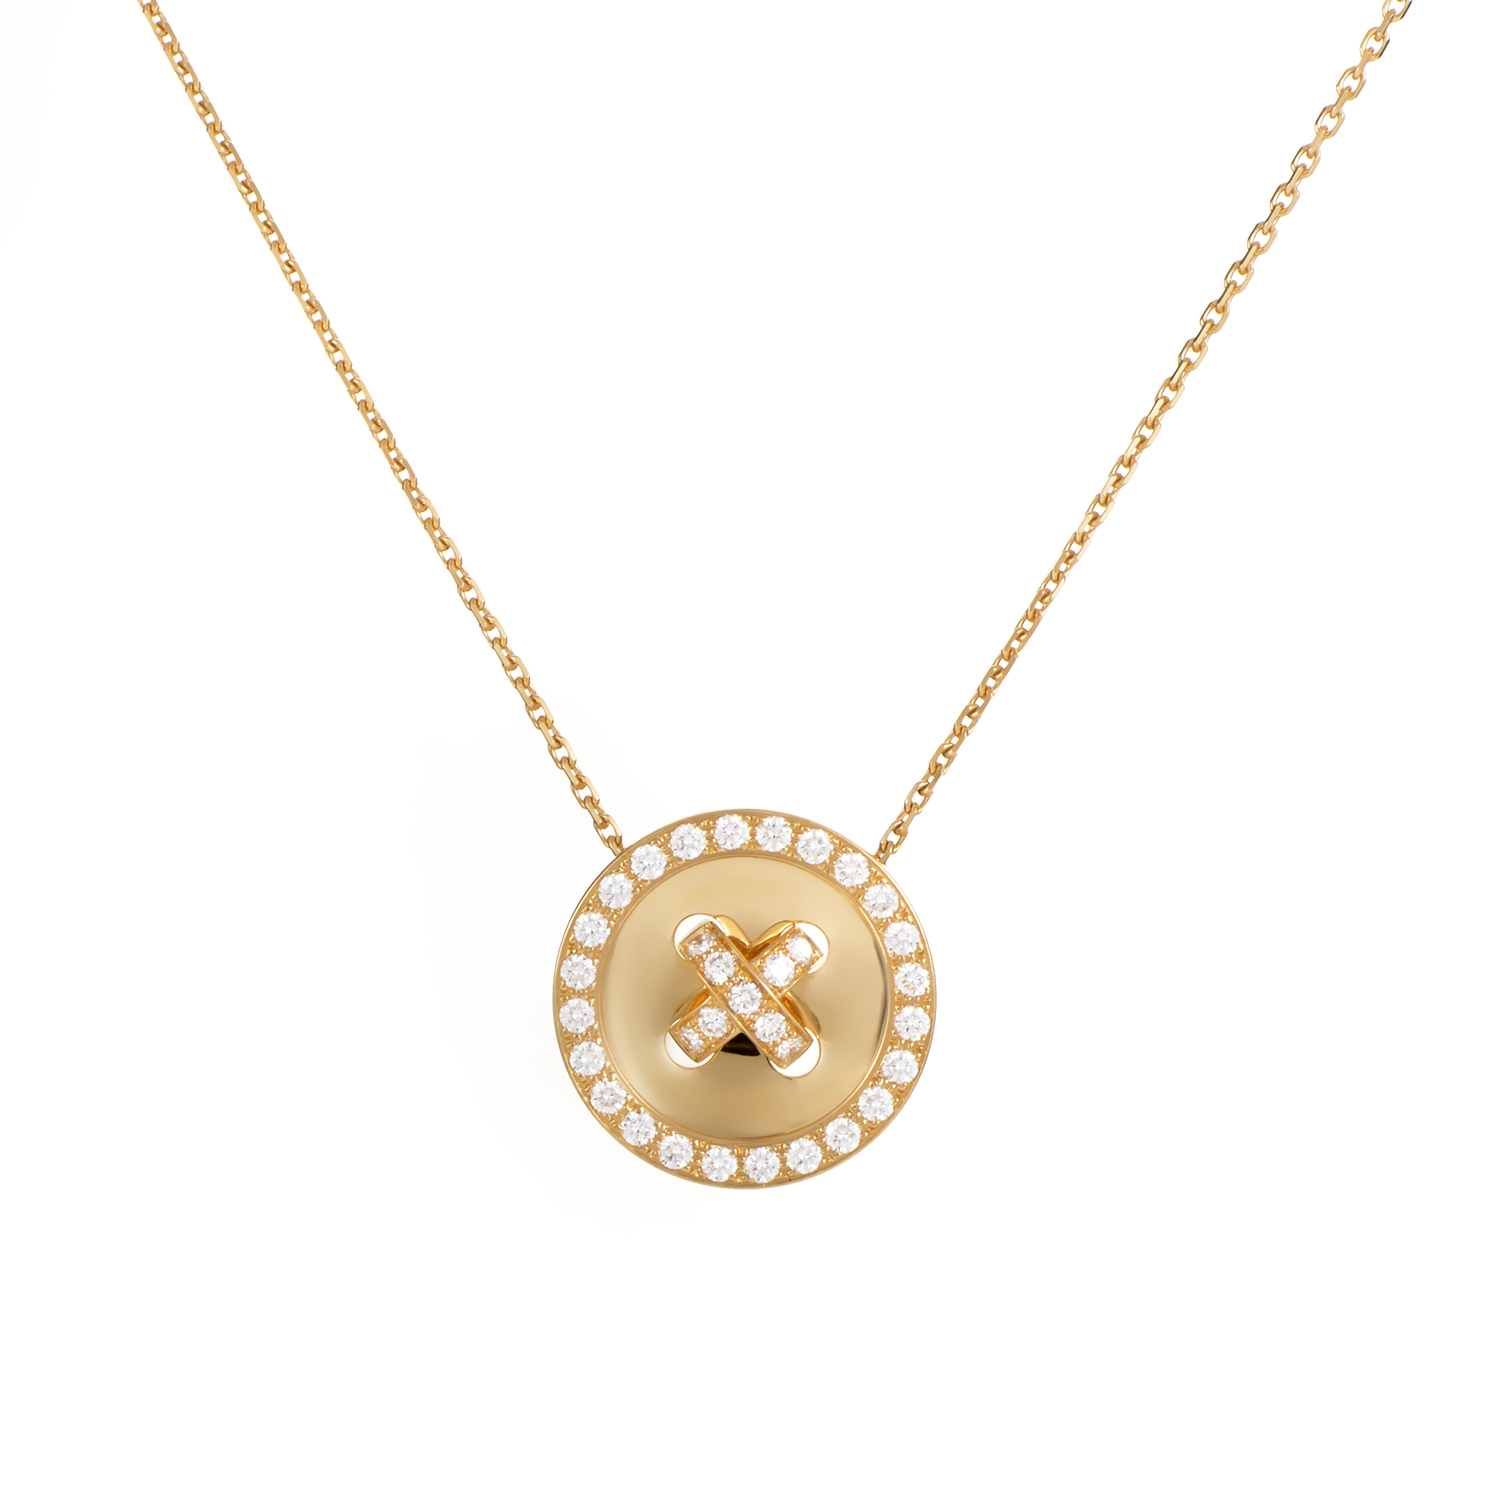 Van Cleef & Arpels 18K Yellow Gold Diamond Button Pendant Necklace